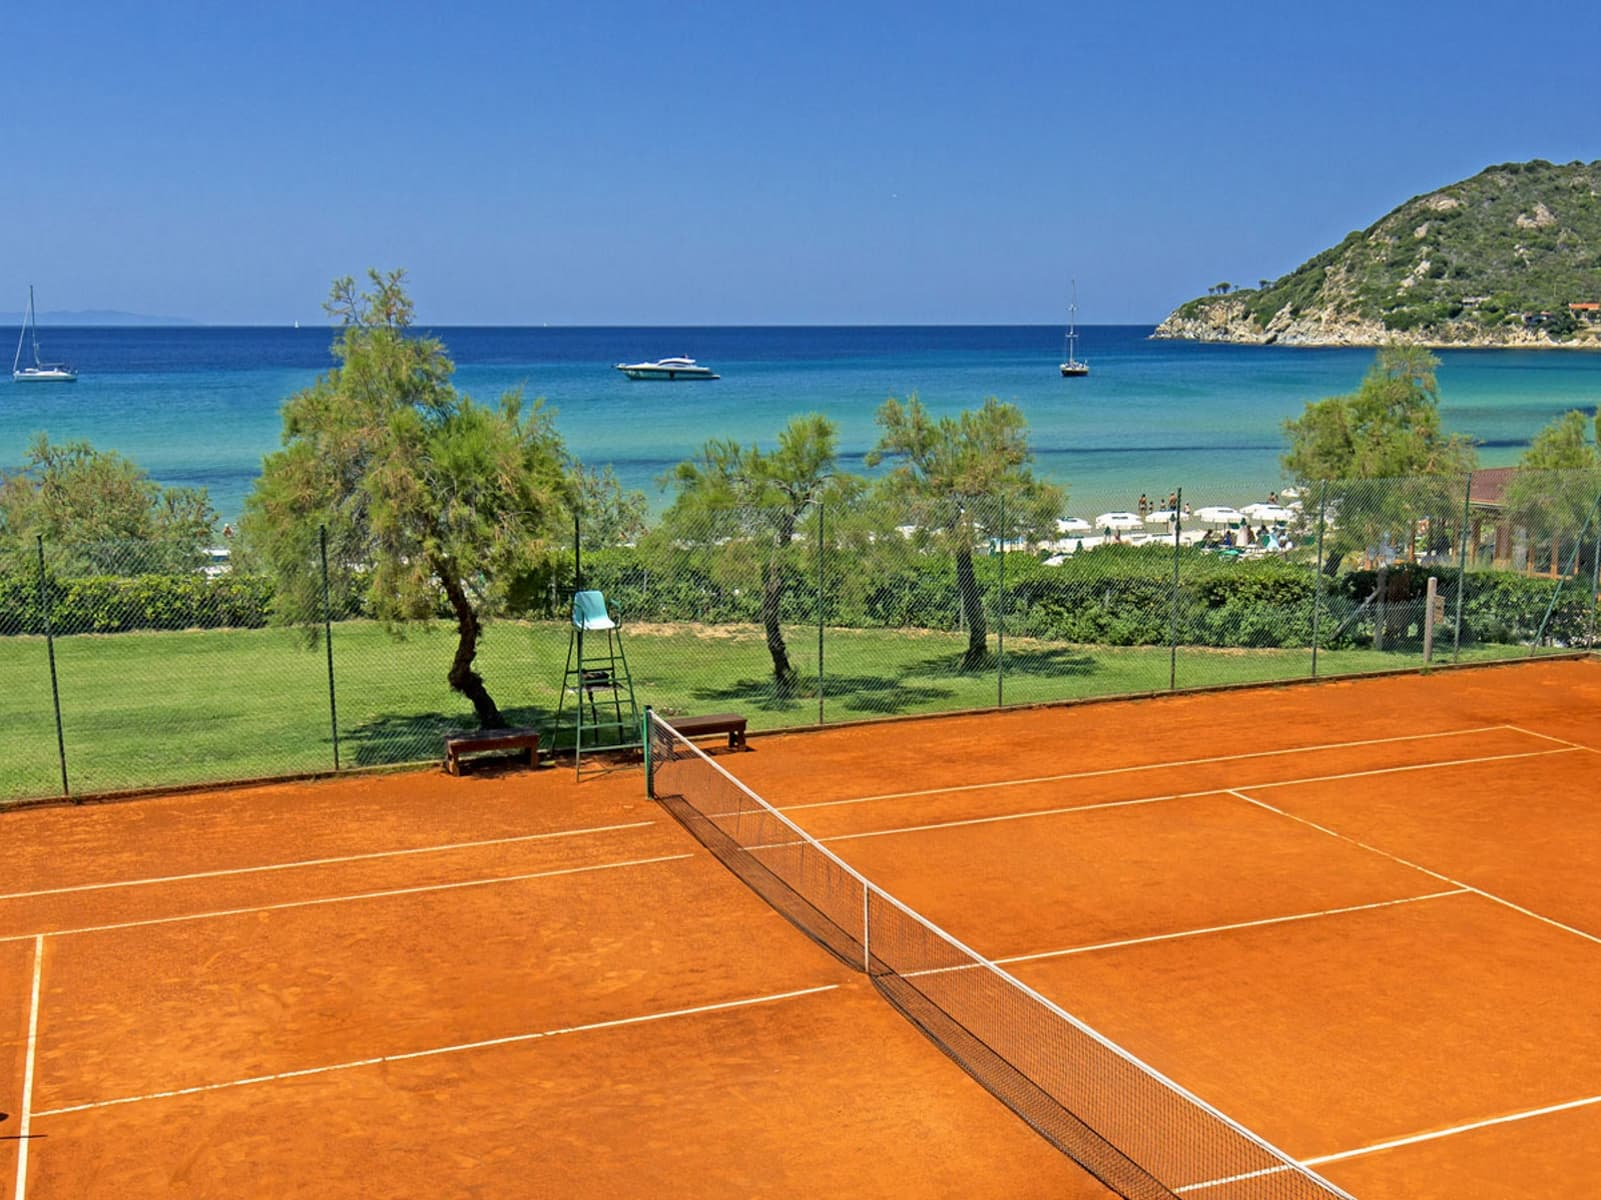 Hotel Hermitage Isola Italy - one of the best tennis resorts for your tennis holidays in Portoferraio